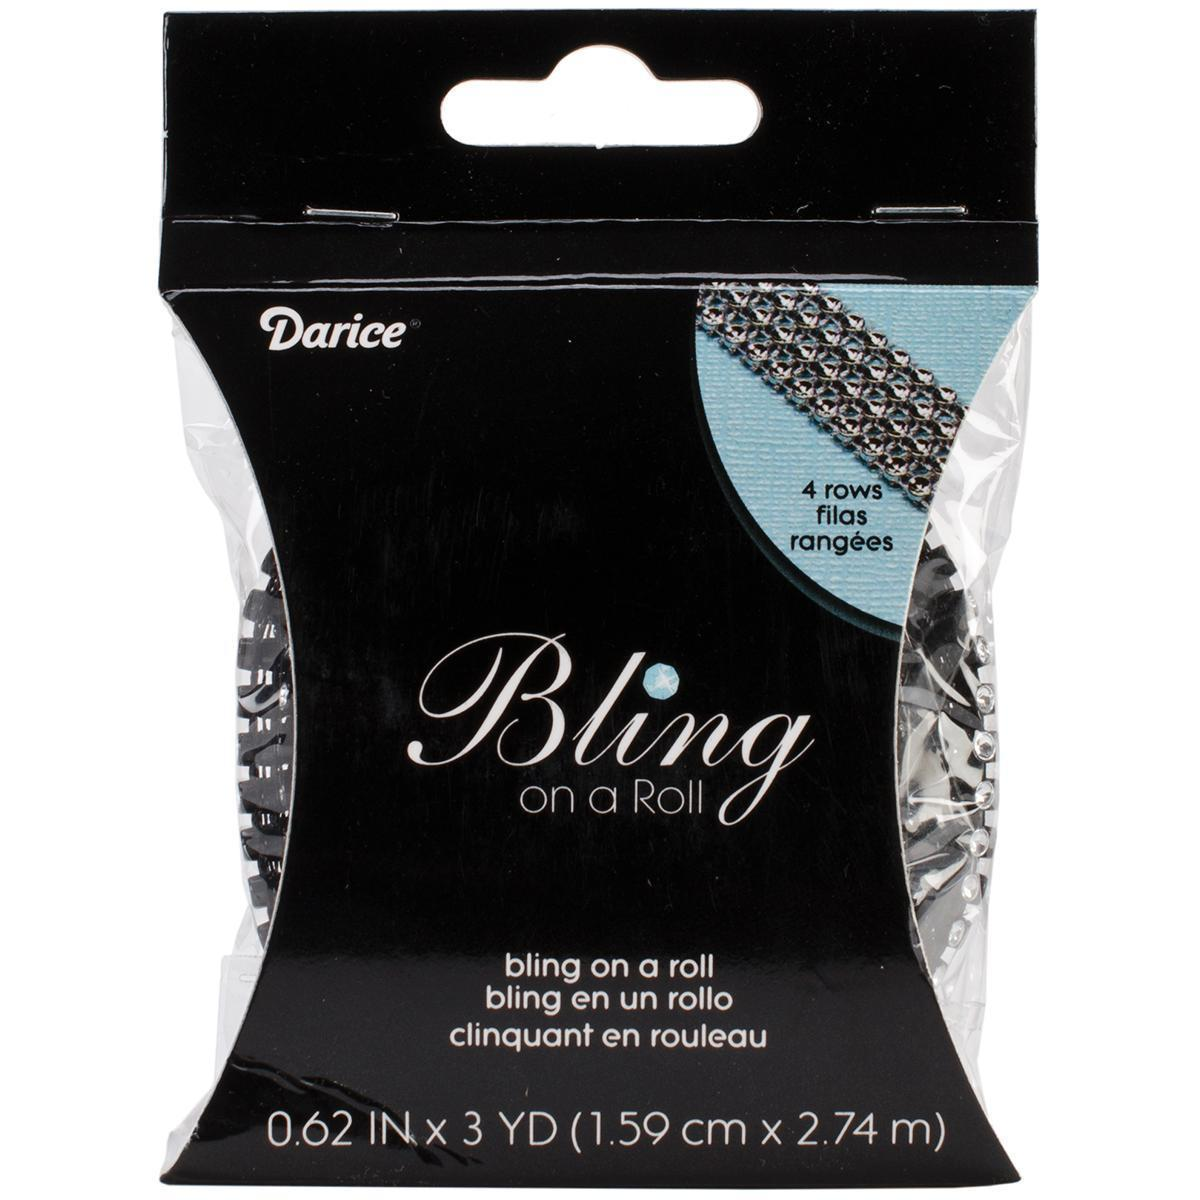 DARICE Bling On A Roll 3mm X 3yds - 4 Row, Black/Silver (...